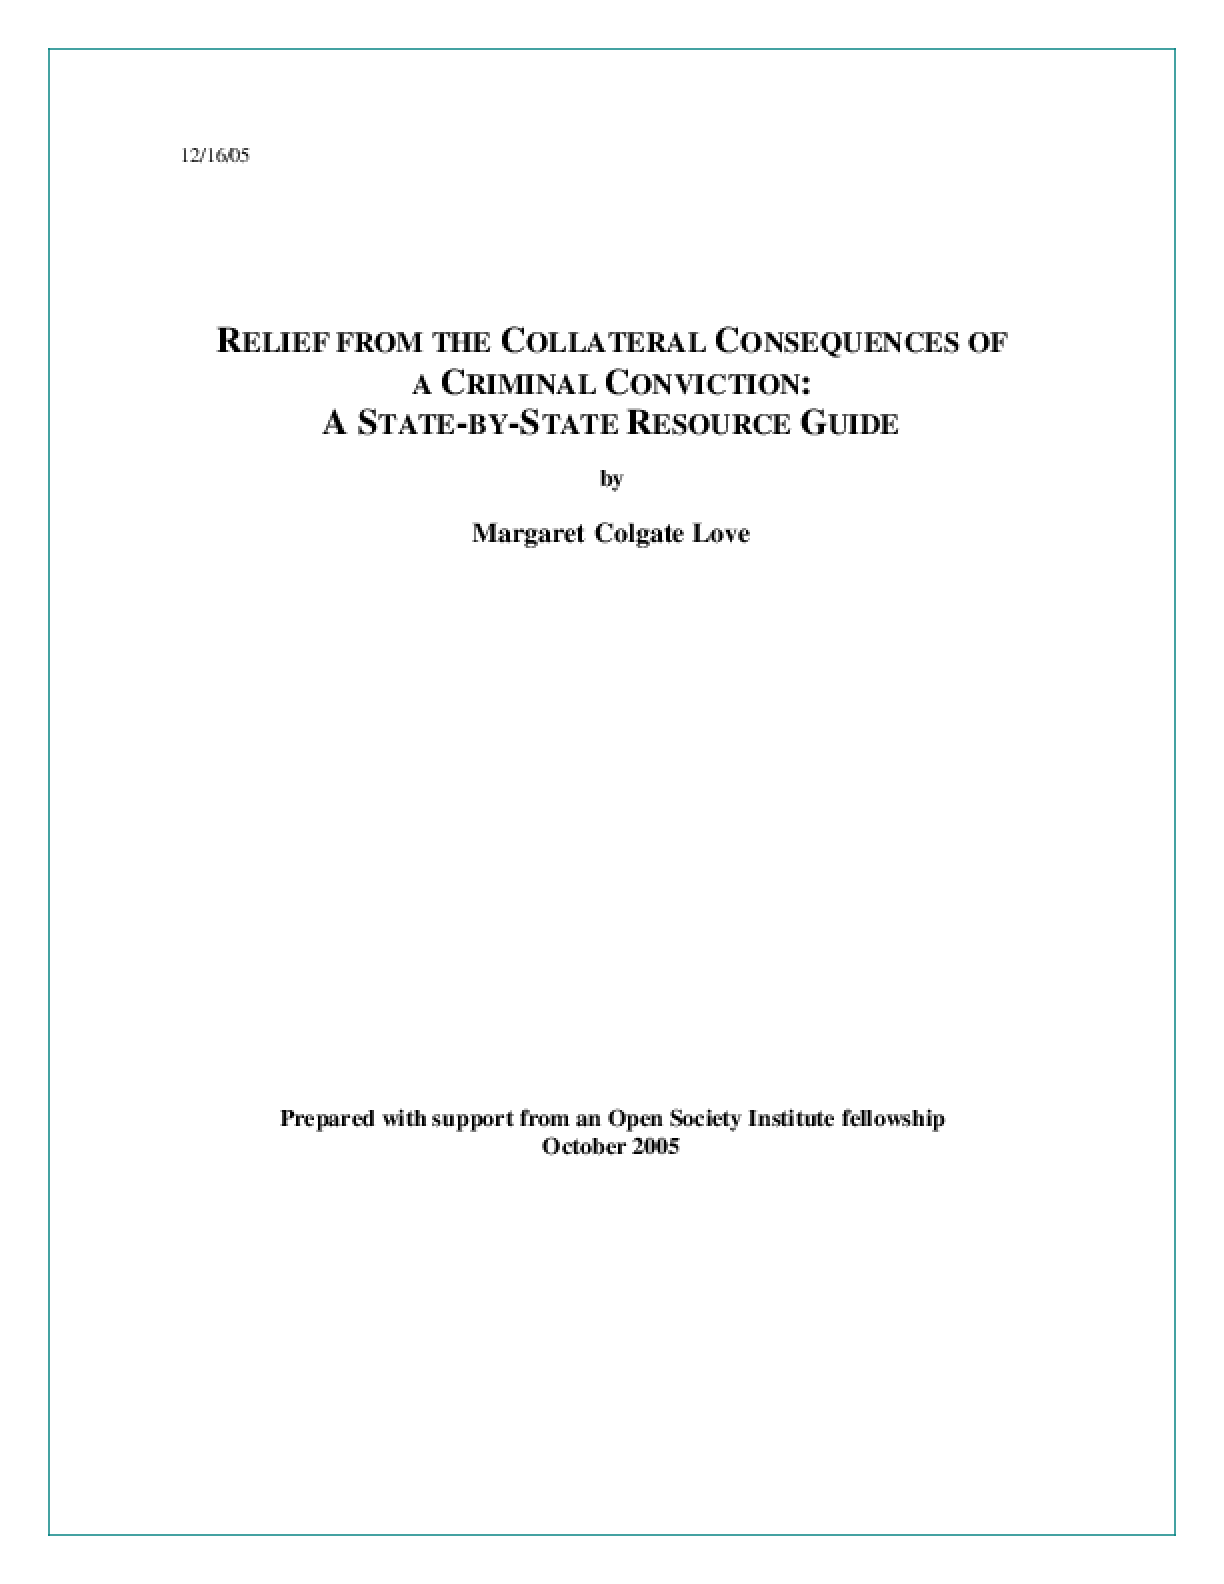 Relief from the Collateral Consequences of a Criminal Conviction: A State-By-State Resource Guide